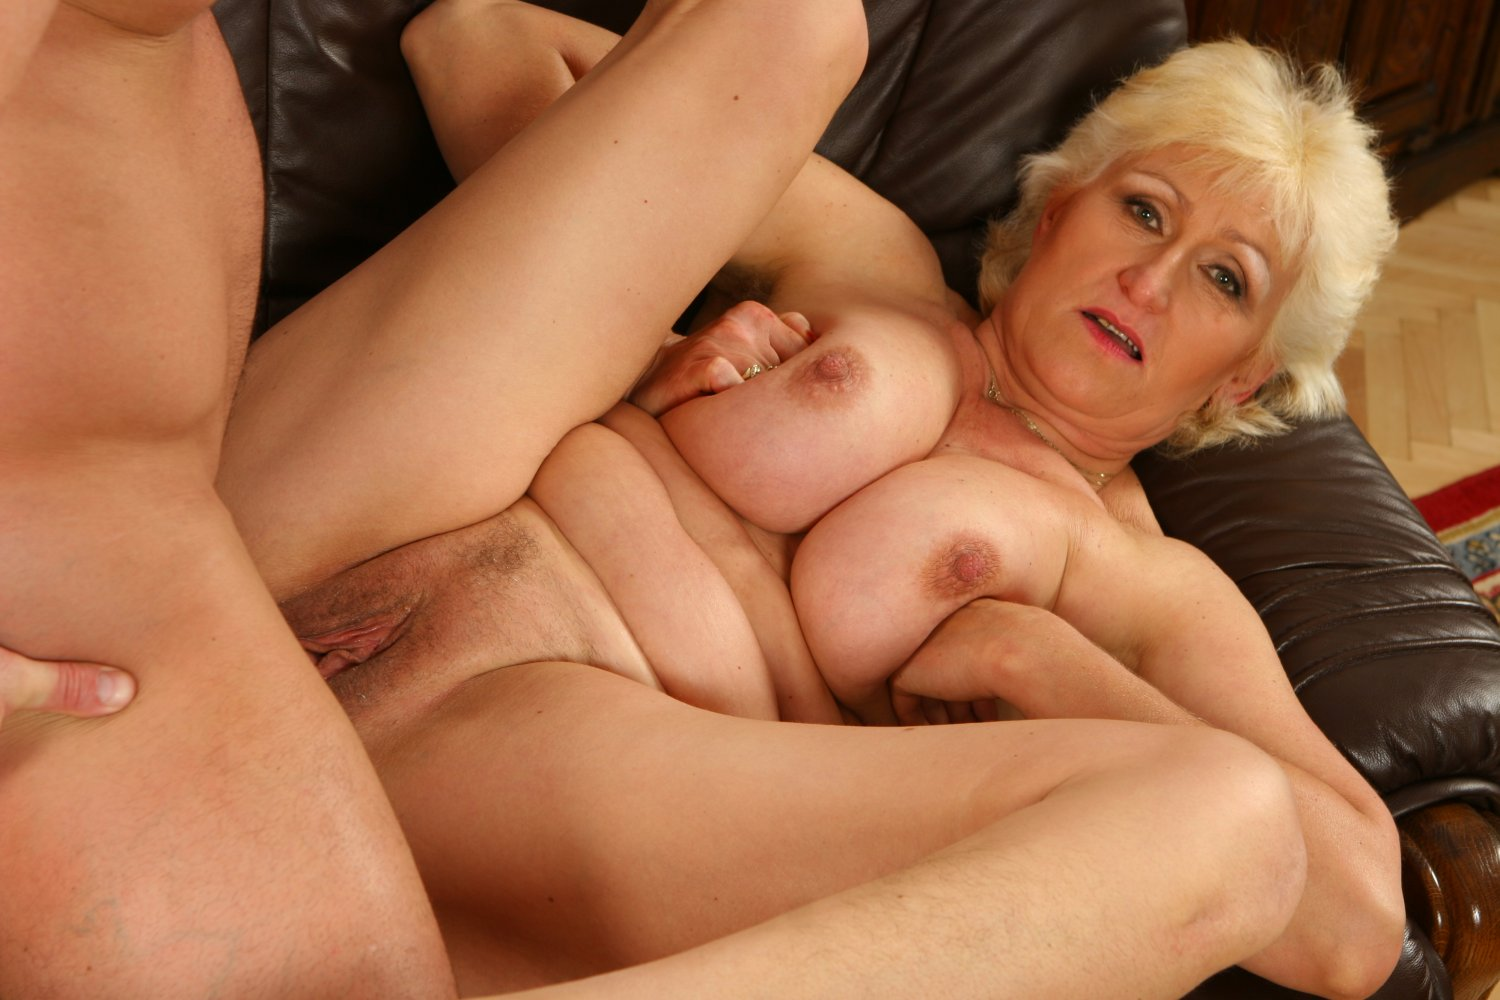 Dyked busty milf fucks husbands hot mistress 7